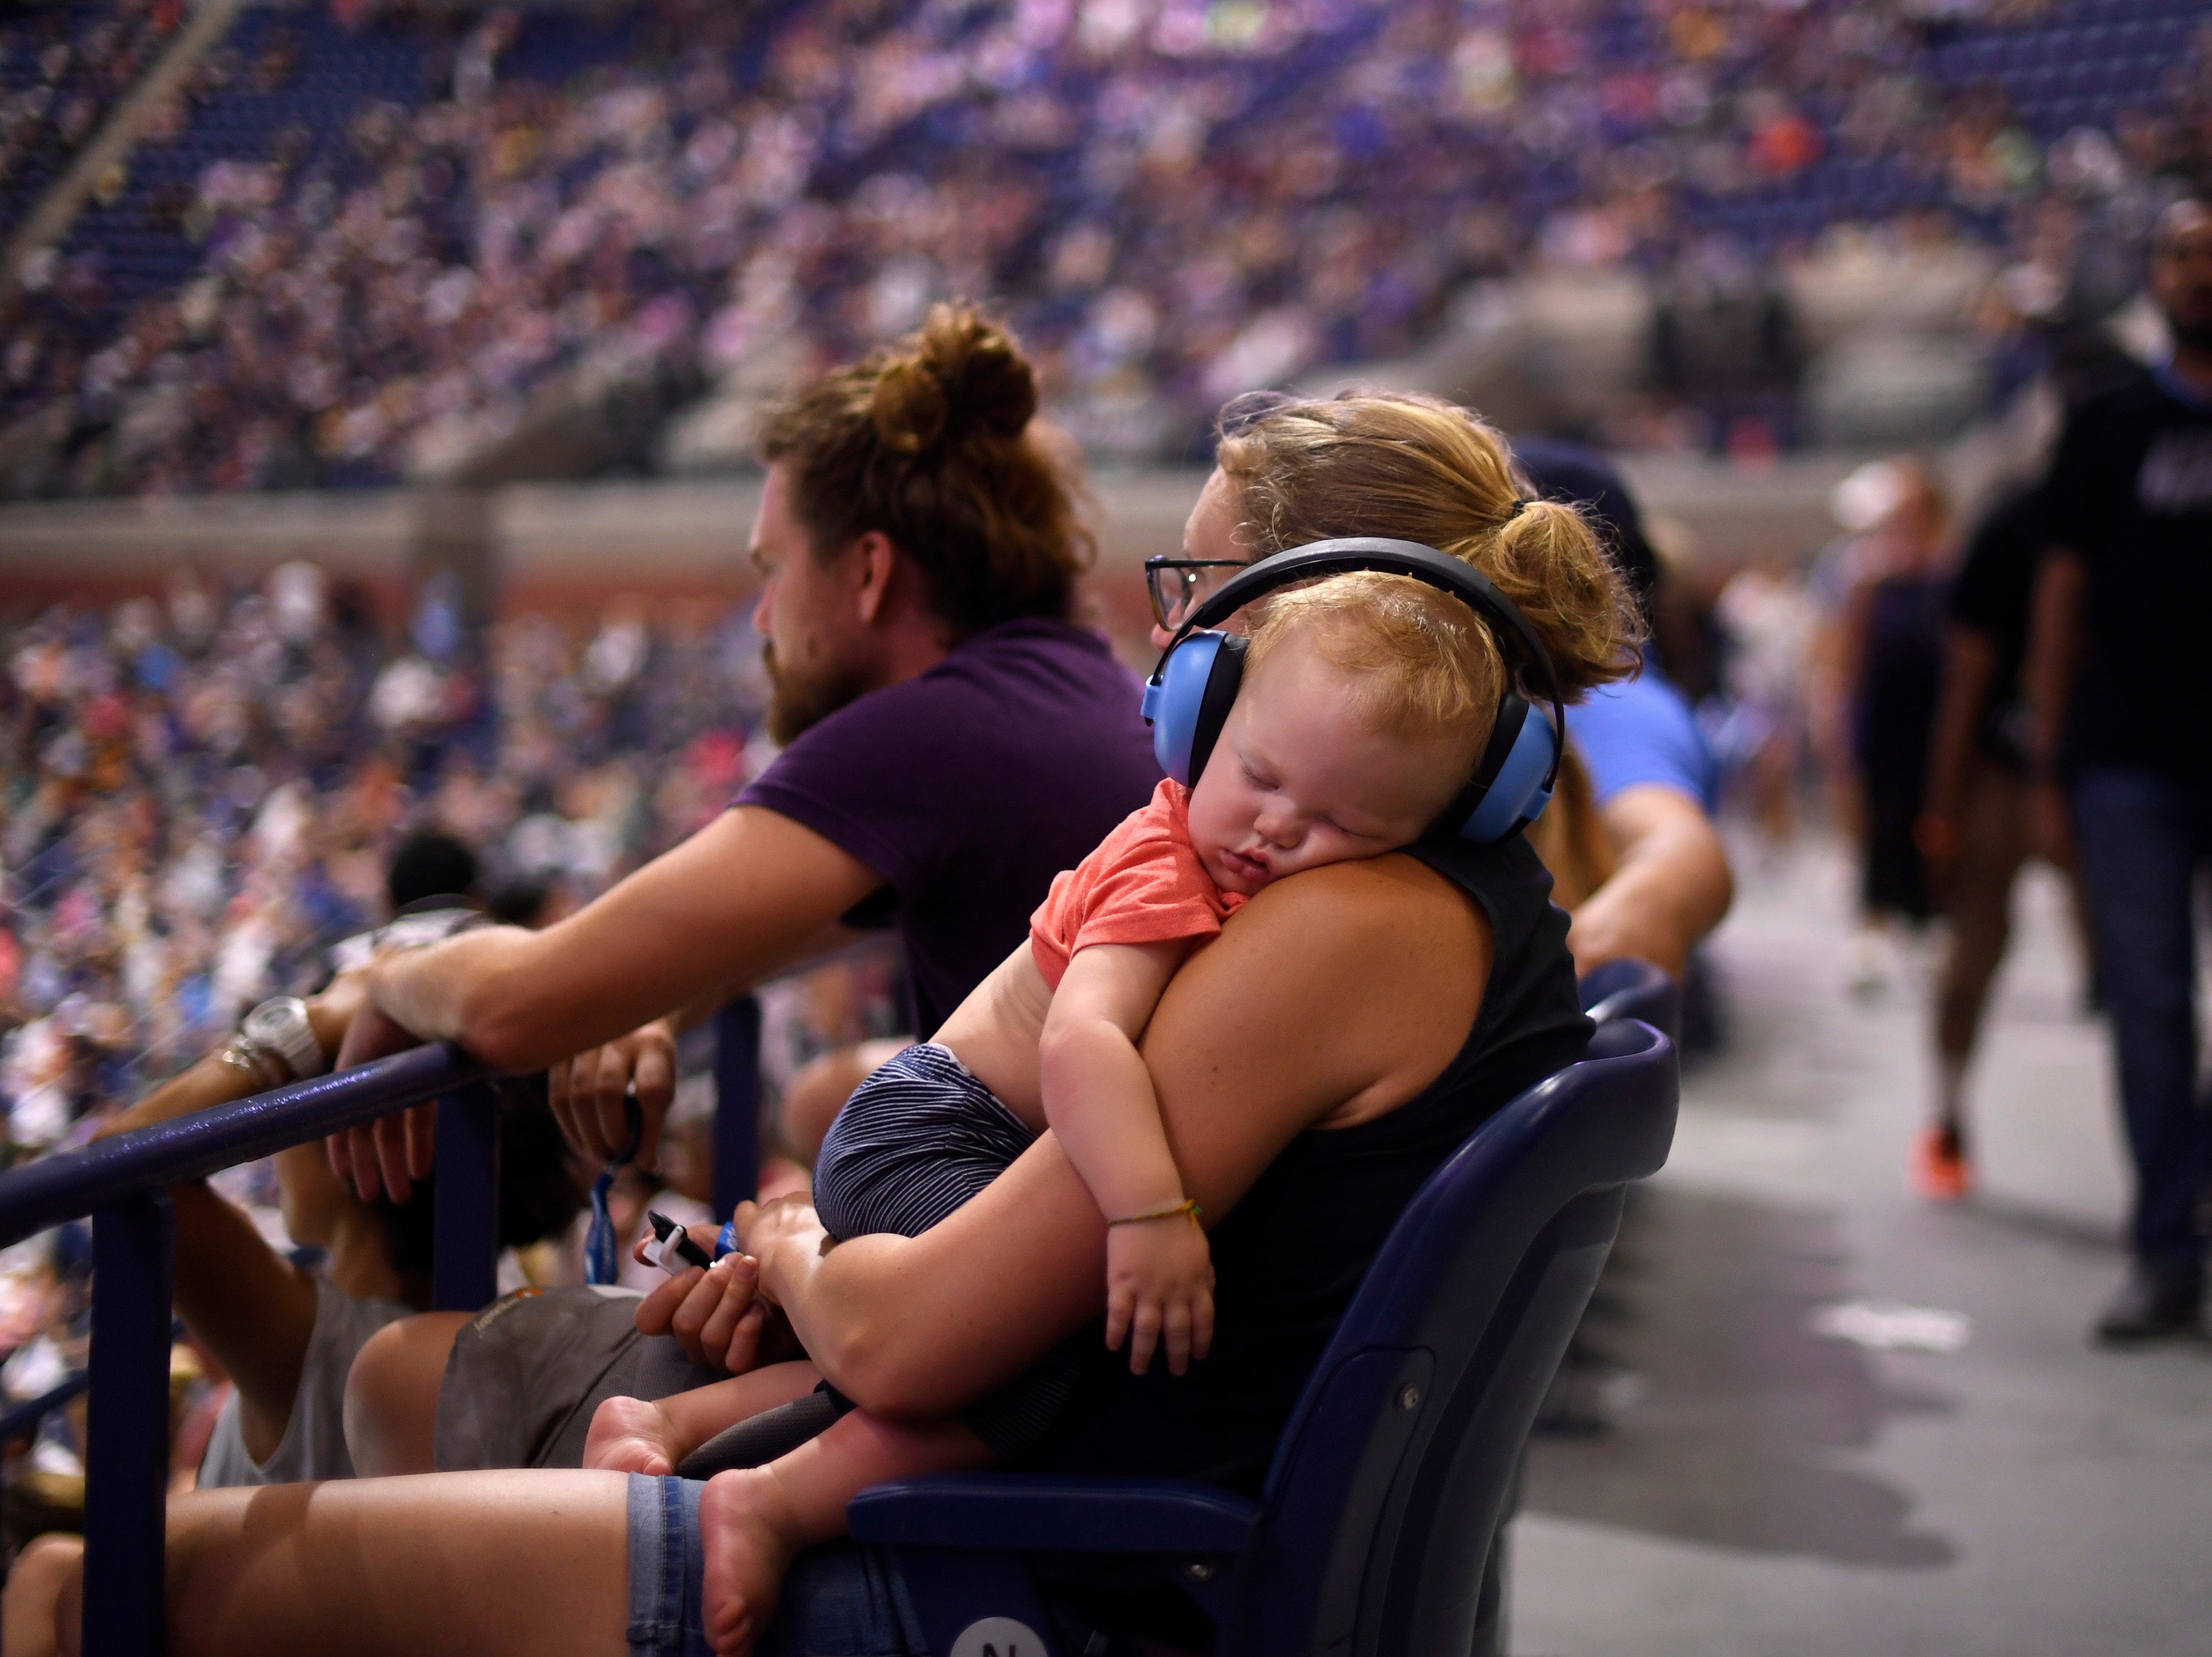 Ten-month-old Holdyn Turner sleeps on the shoulder of mother Kelsey Turner during the match between Roger Federer and John Millman.